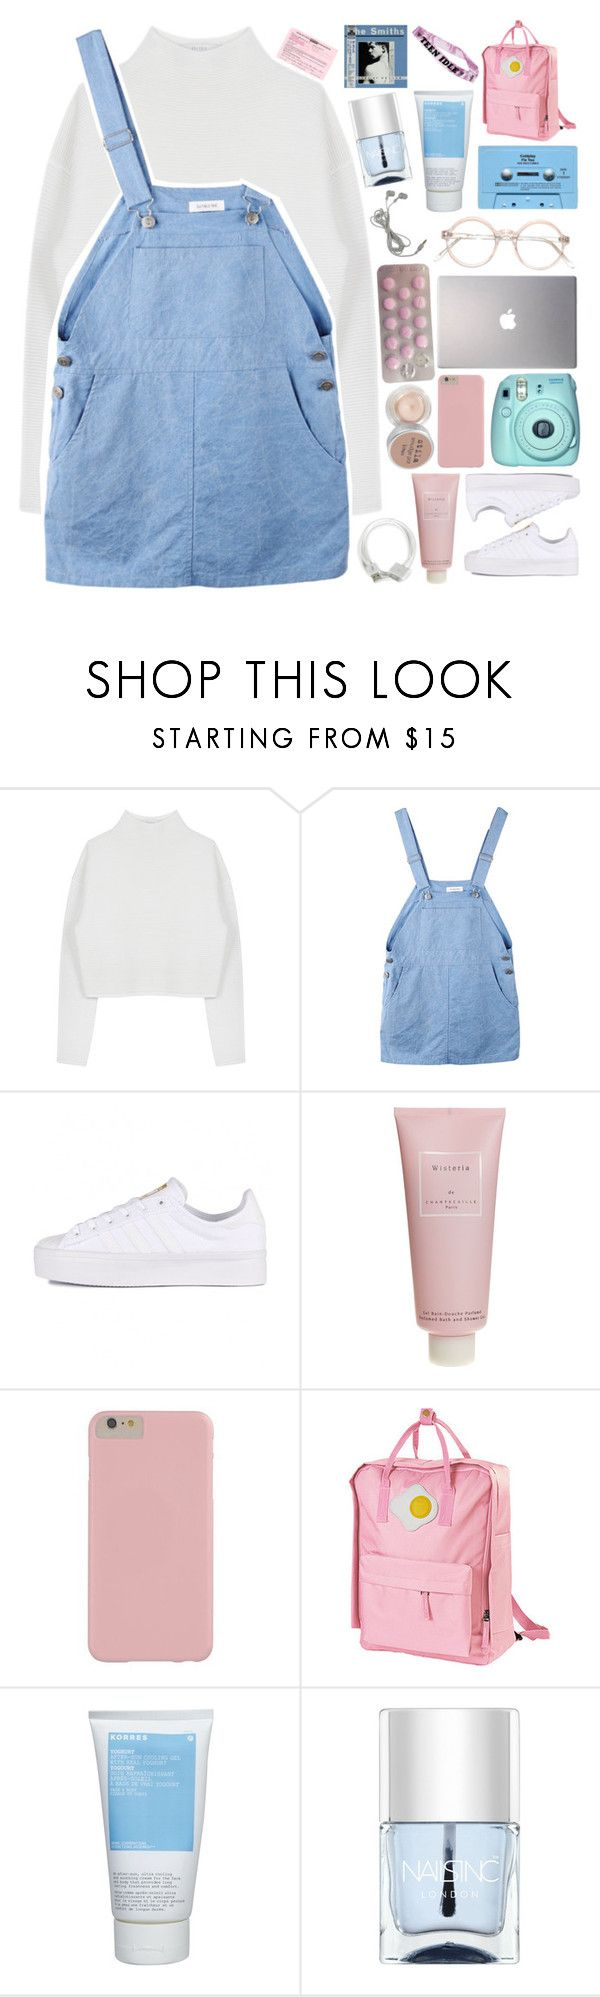 """""""HIT ME WITH YOUR SWEET LOVE STEAL ME WITH A KISS // MARIANA AND THE DIAMONDS"""" by grunge-alien ❤ liked on Polyvore featuring Dion Lee, adidas Originals, Chantecaille, Polaroid, Samsung, CASSETTE, Stila, Korres and Nails Inc."""